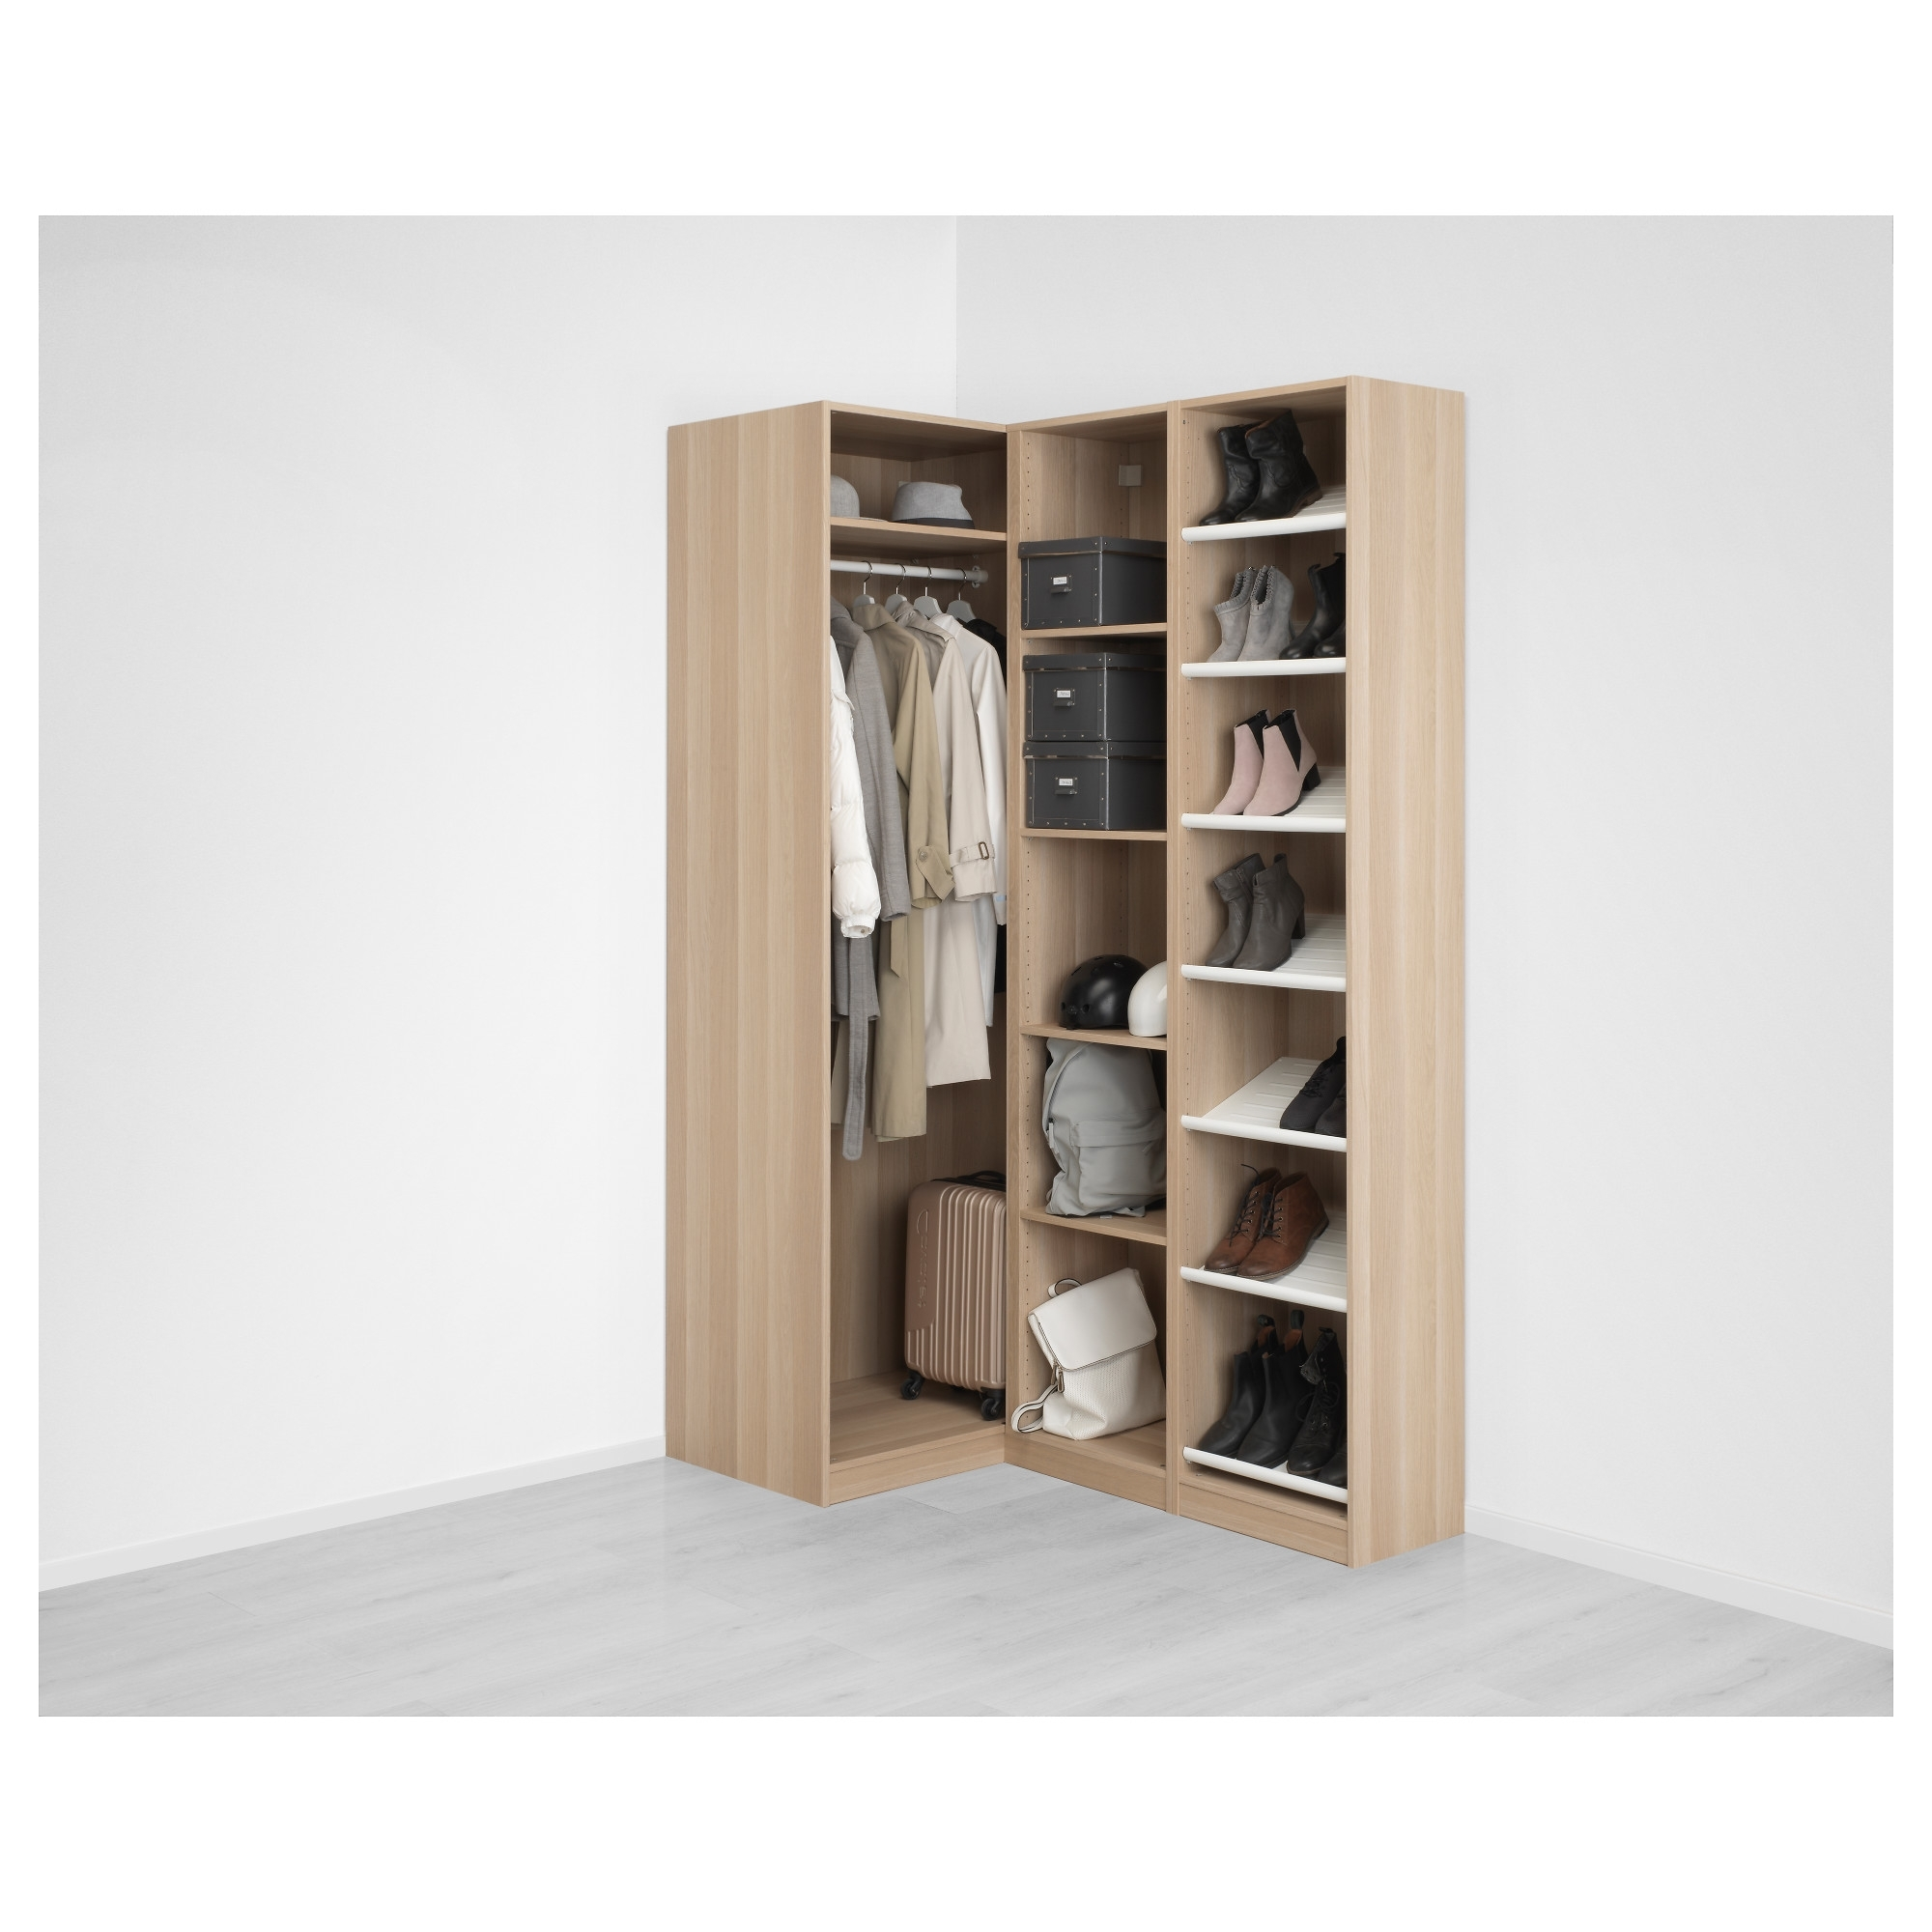 closet decor wardrobe armoire unusual nice with also color decorating simple shelving design ideas cheap bedroom photo